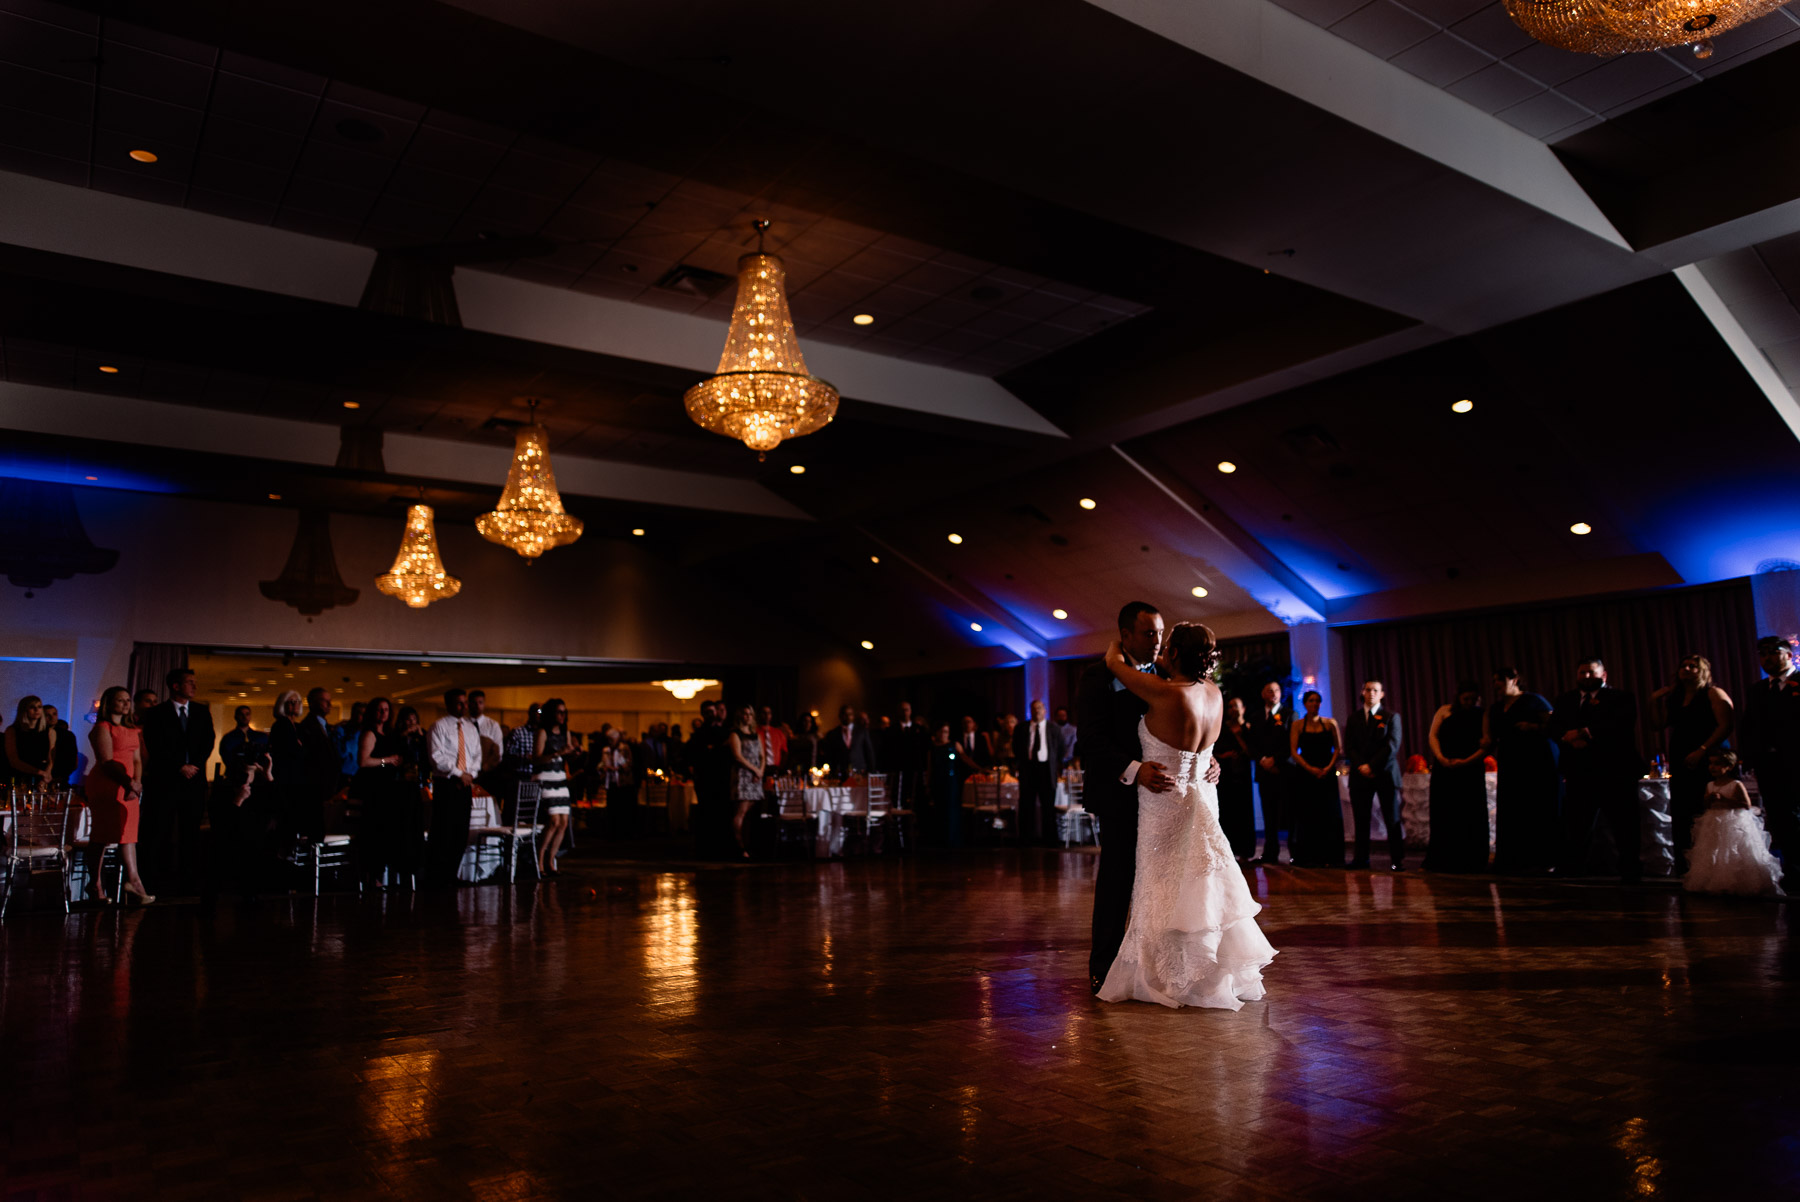 springfield-country-club-wedding-photo-54.jpg